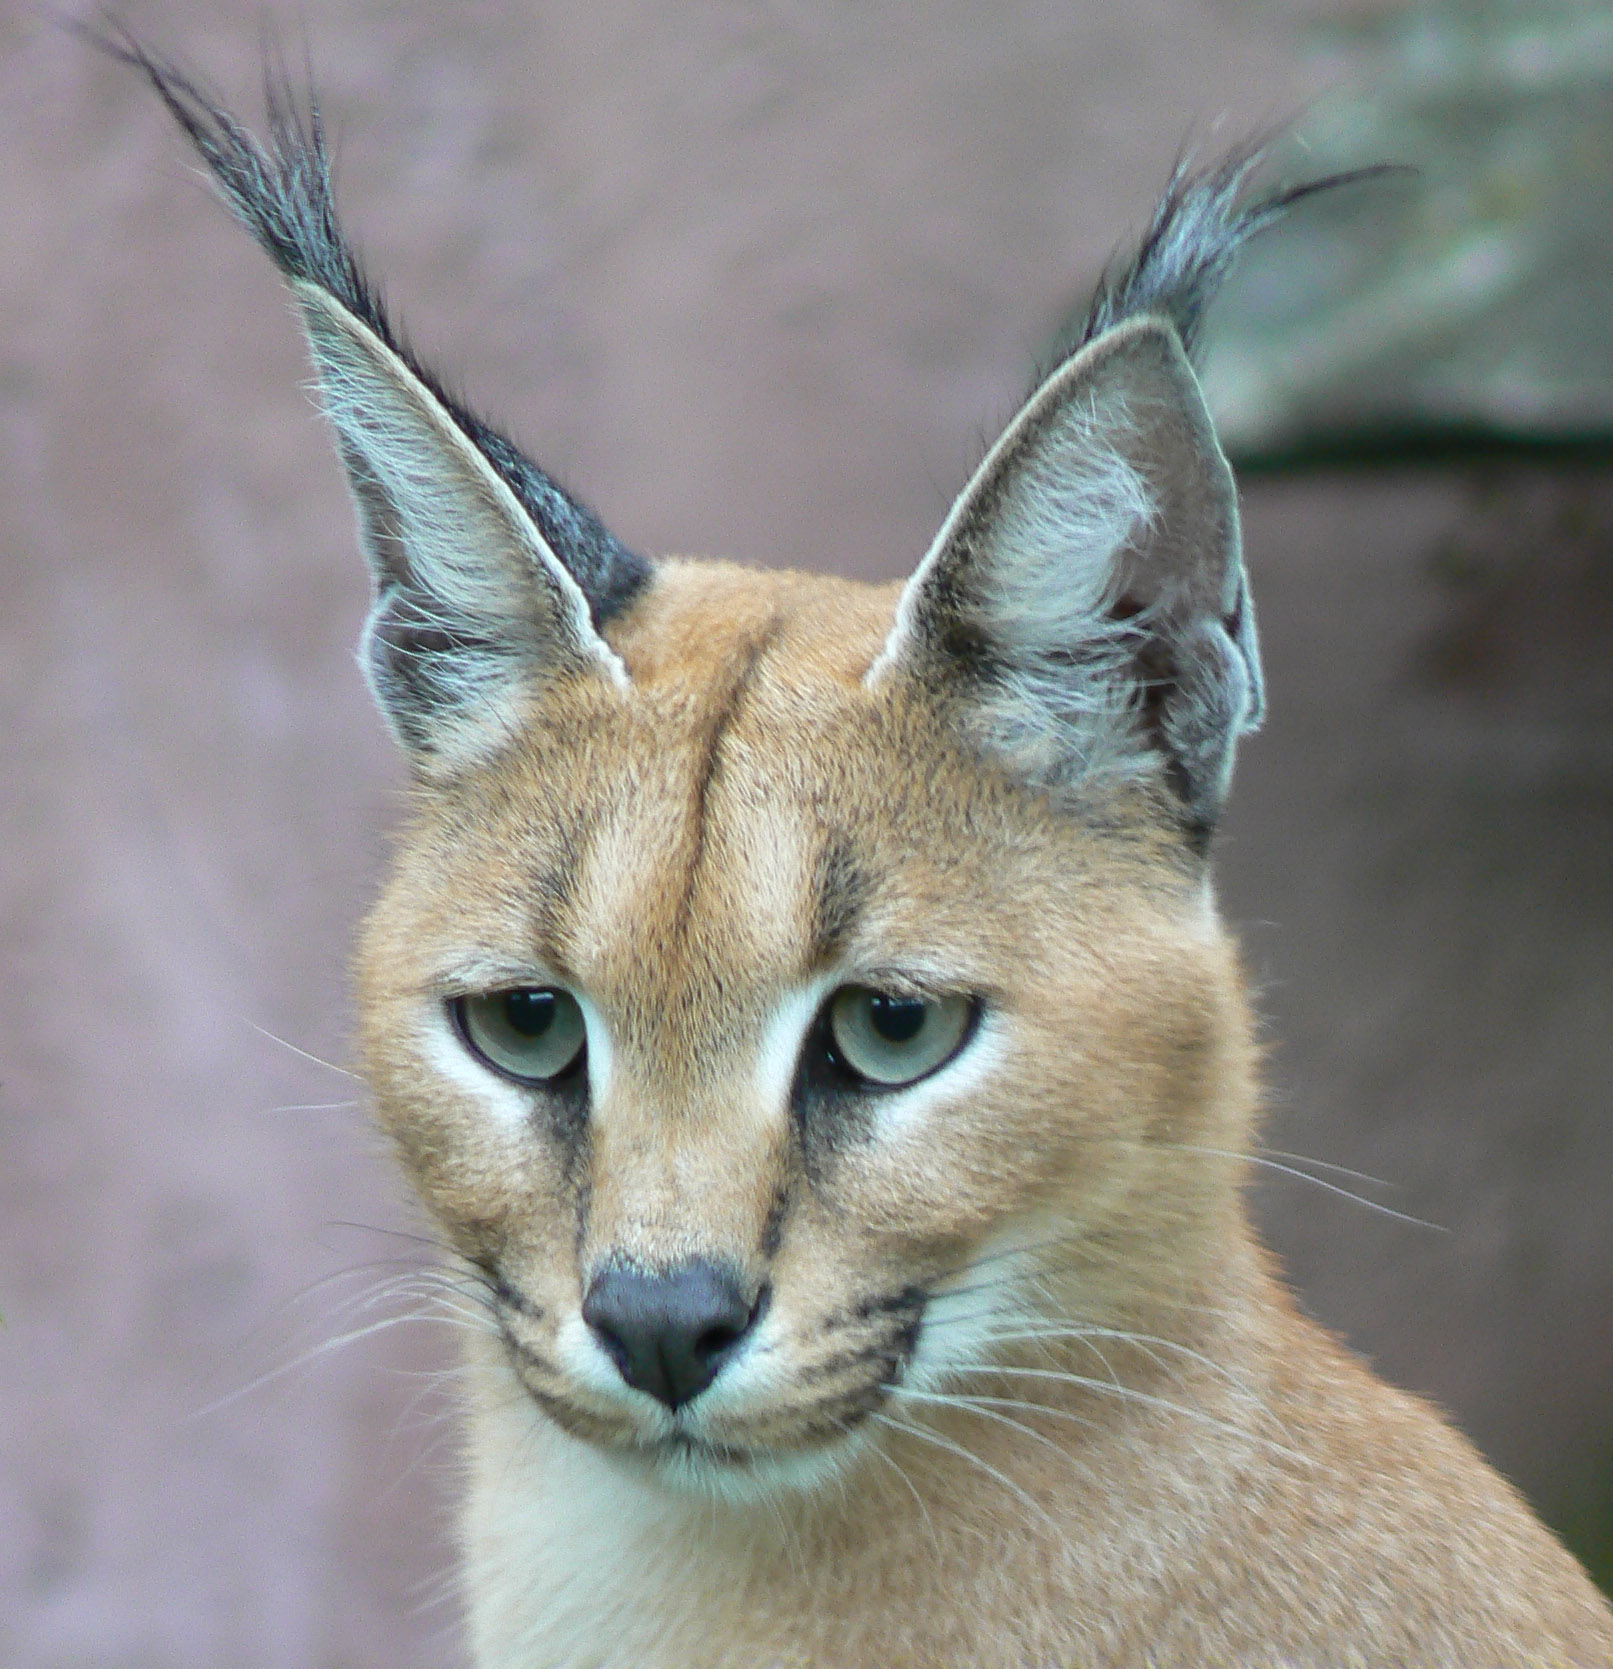 http://upload.wikimedia.org/wikipedia/commons/a/a5/Caracal001.jpg